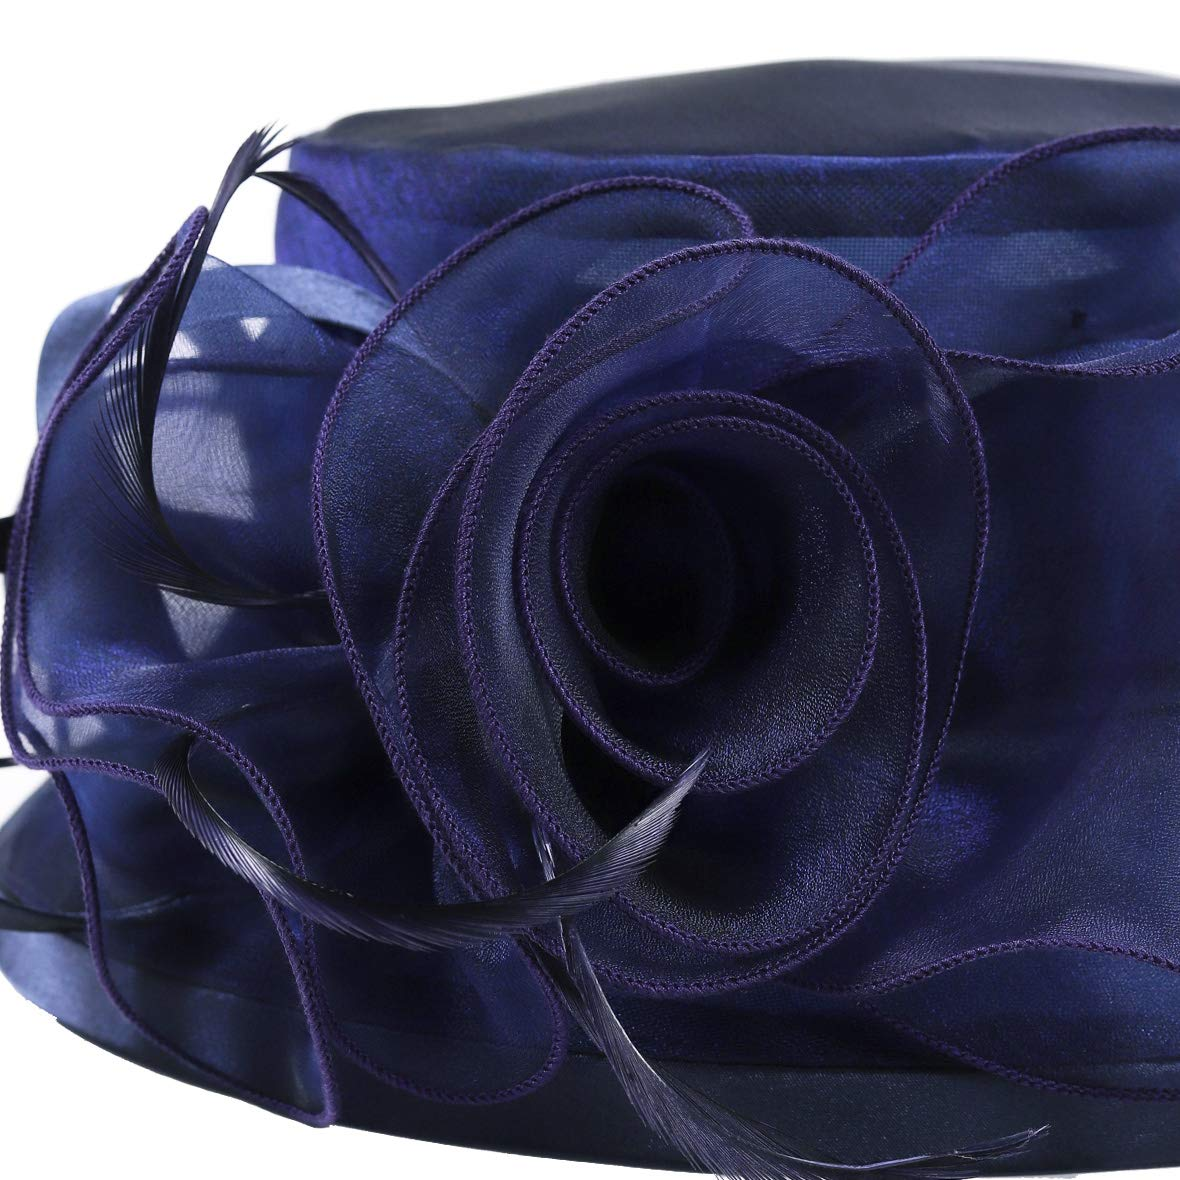 Lady Church Derby Dress Cloche Hat Fascinator Floral Tea Party Wedding Bucket Hat S051 (S043-Navy) by Ruphedy (Image #6)